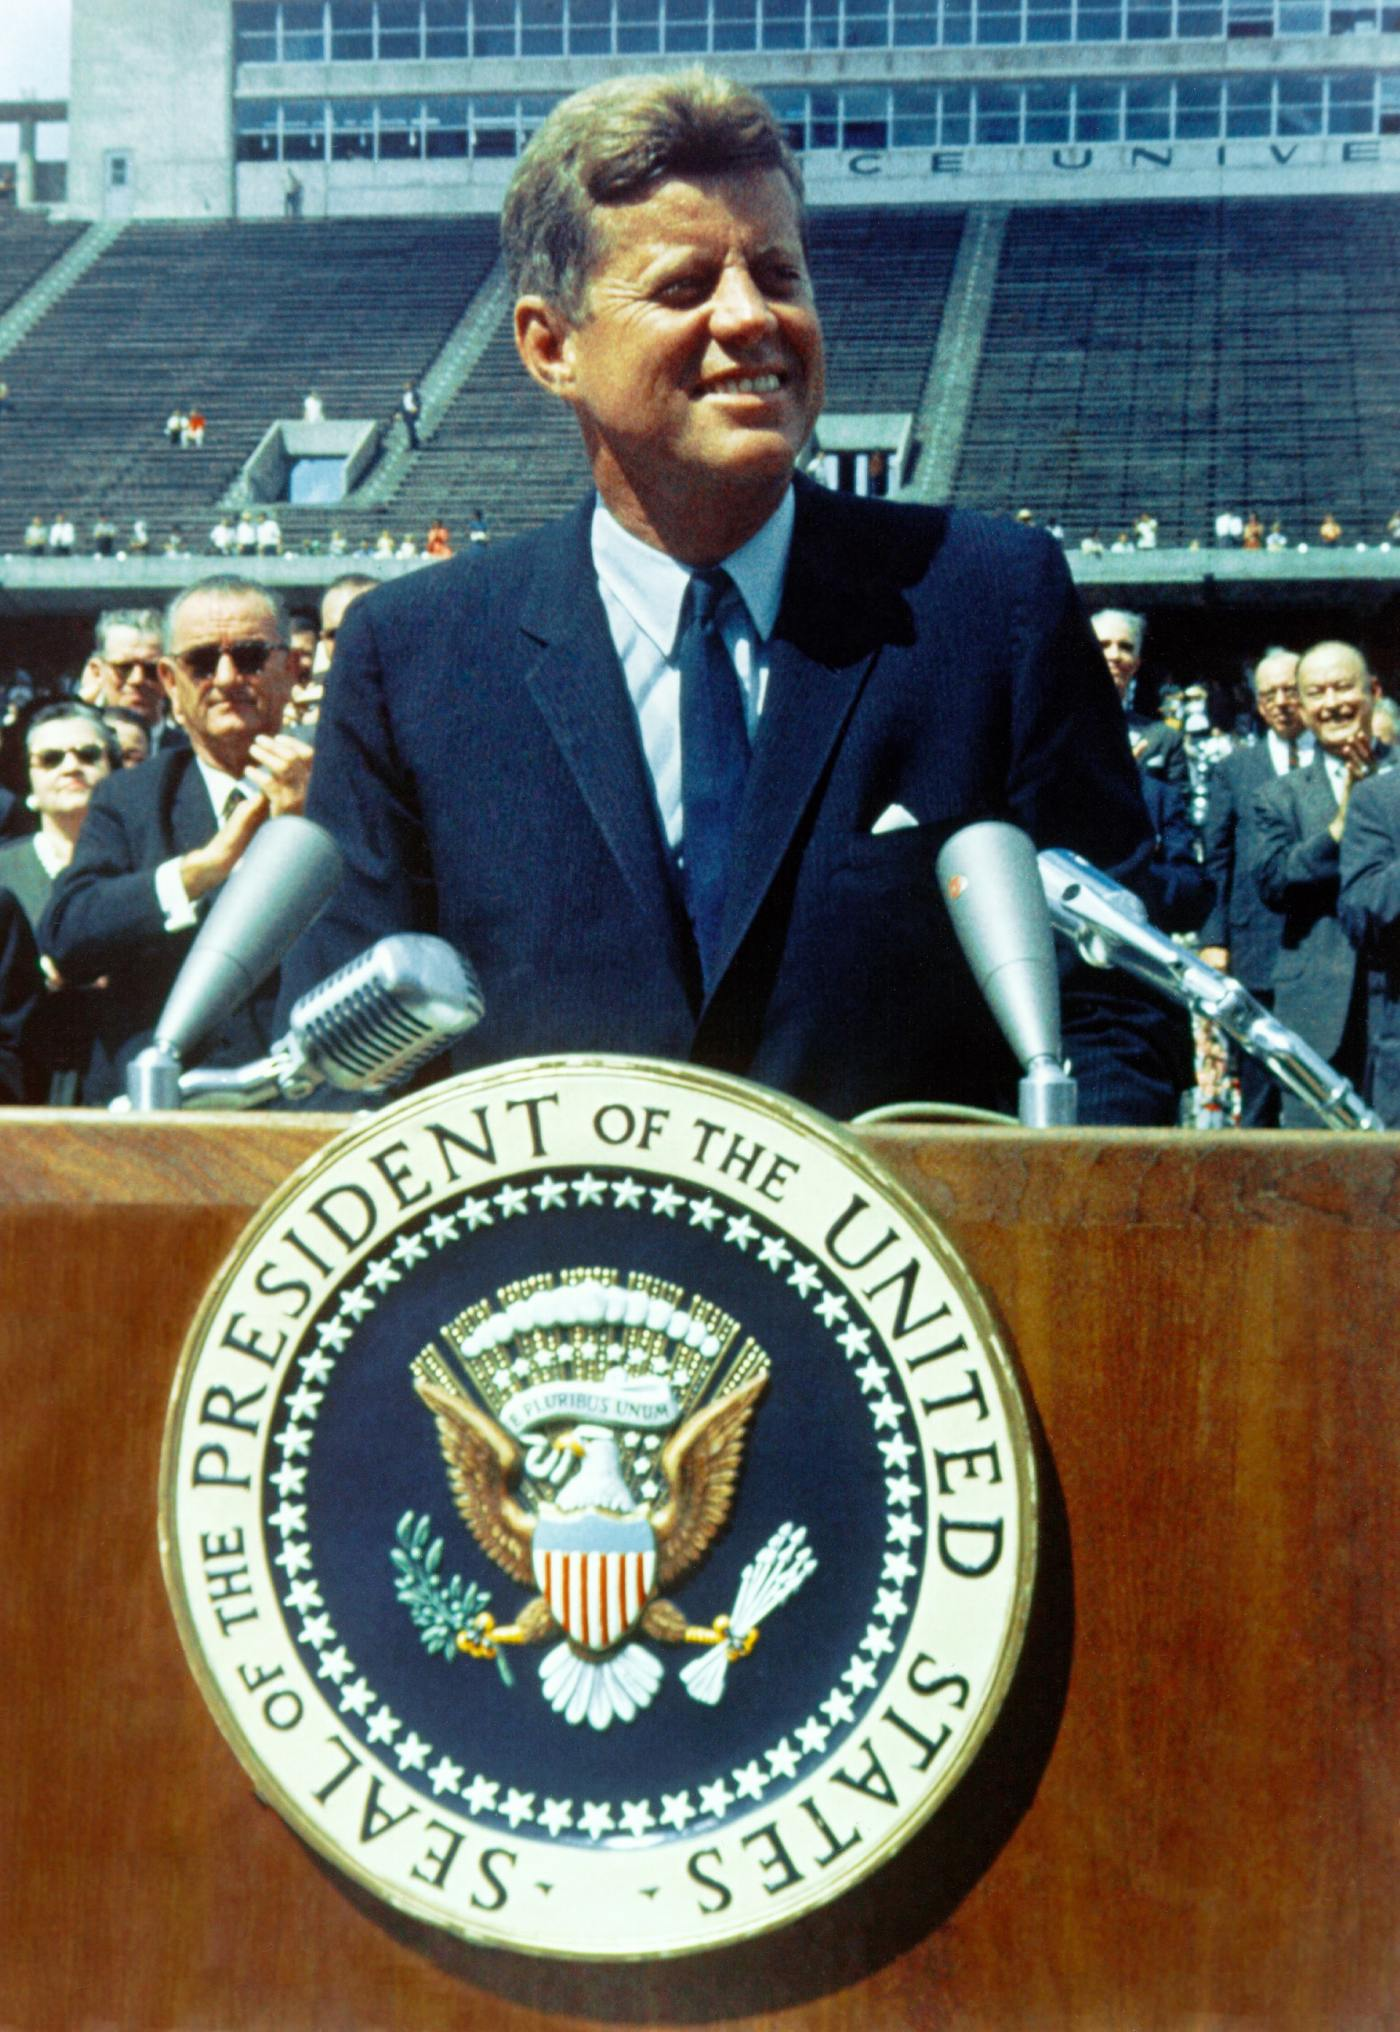 Historical photo of JFK speaking engagement